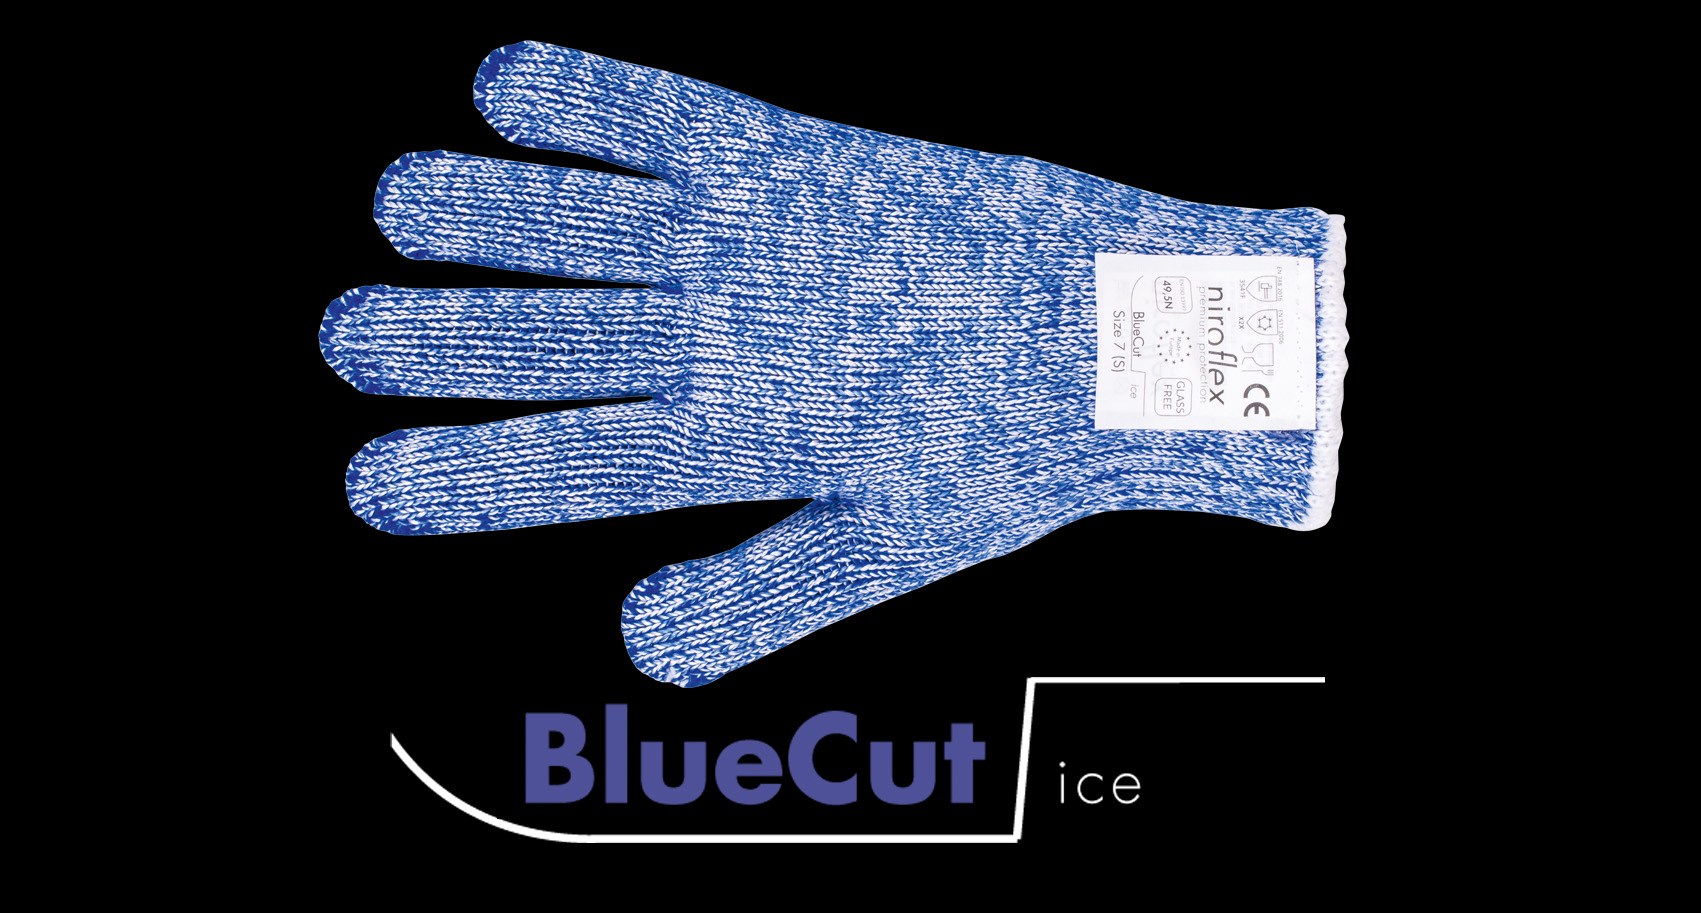 BlueCut ice / BlueShell ice / BlueShell ice dots